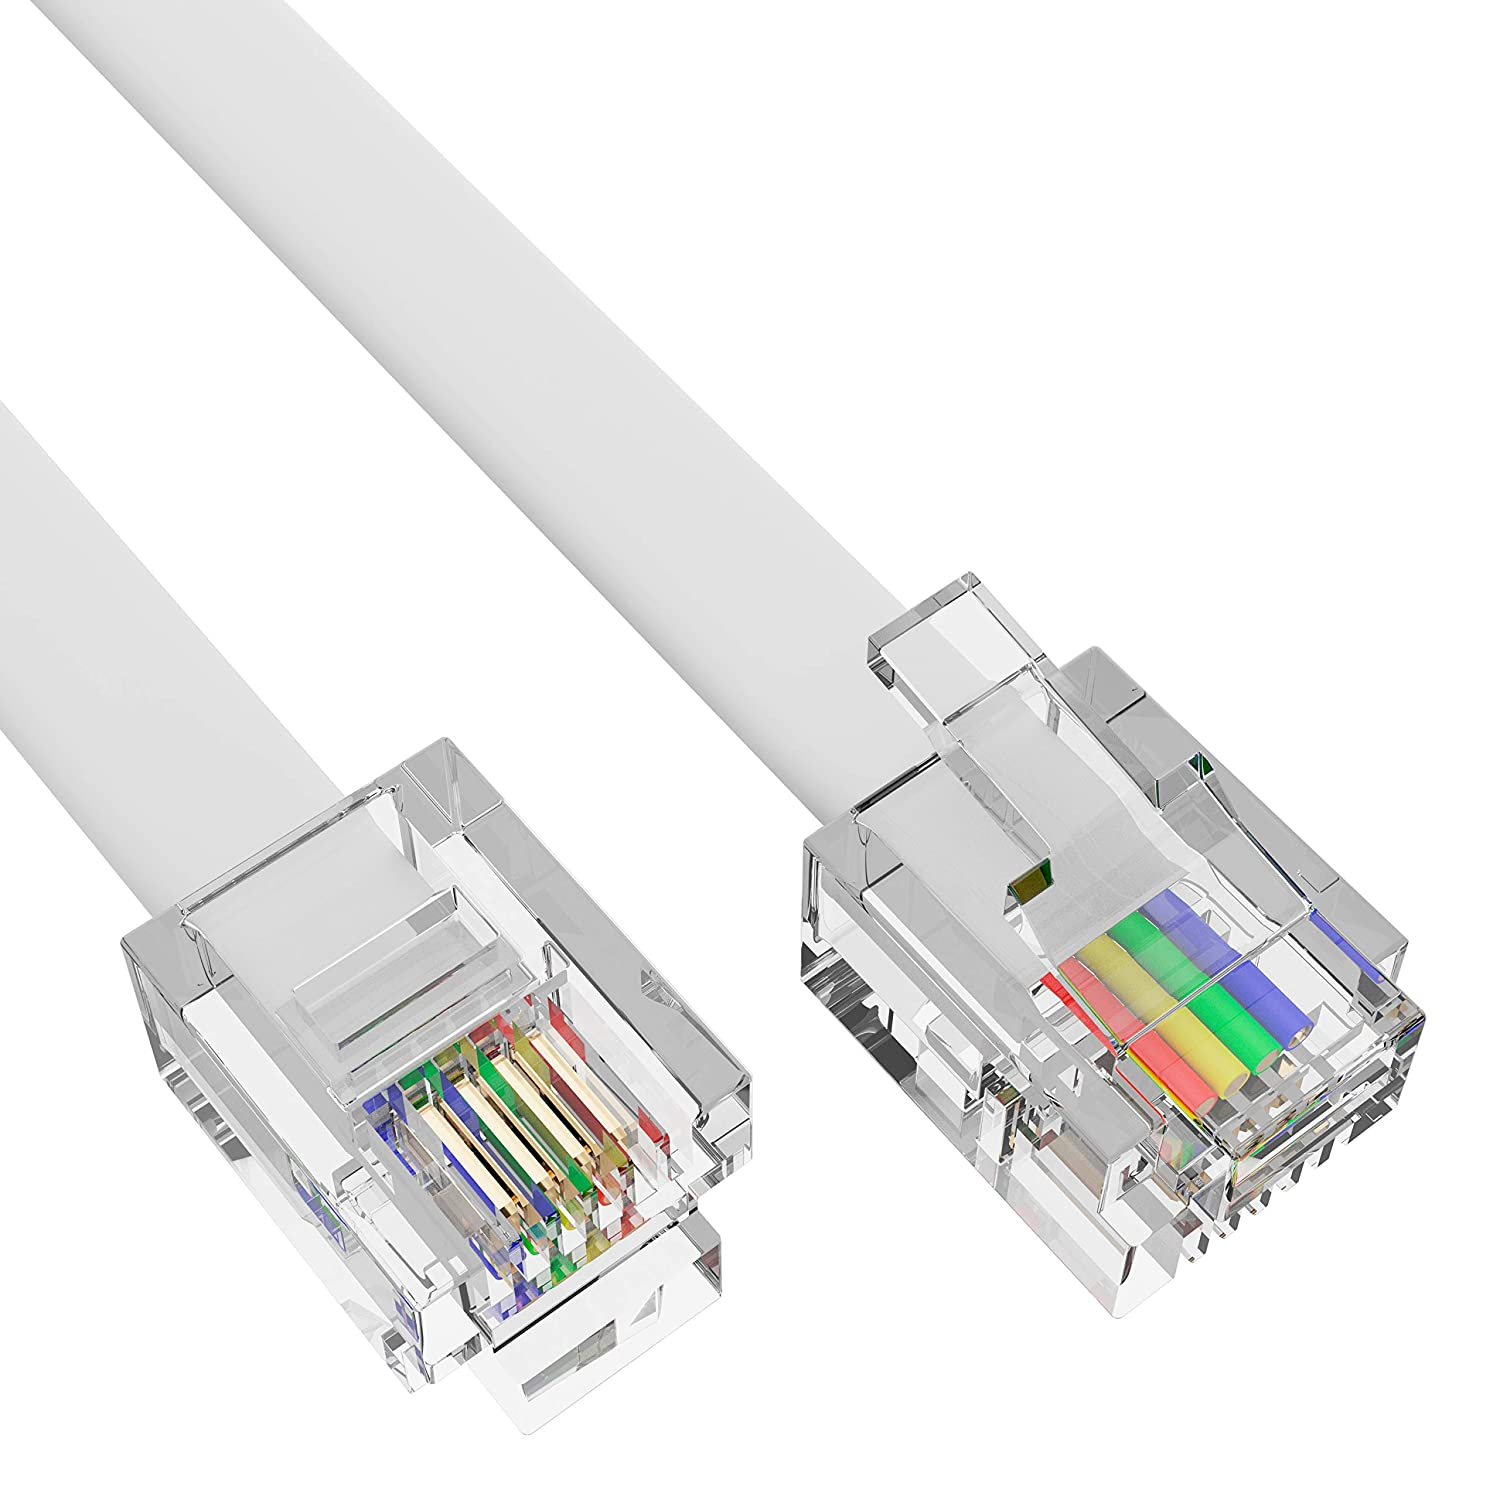 WiFi Router G-PLUG RJ11 to RJ11 2m Cable Easy to Fit in Phone ...